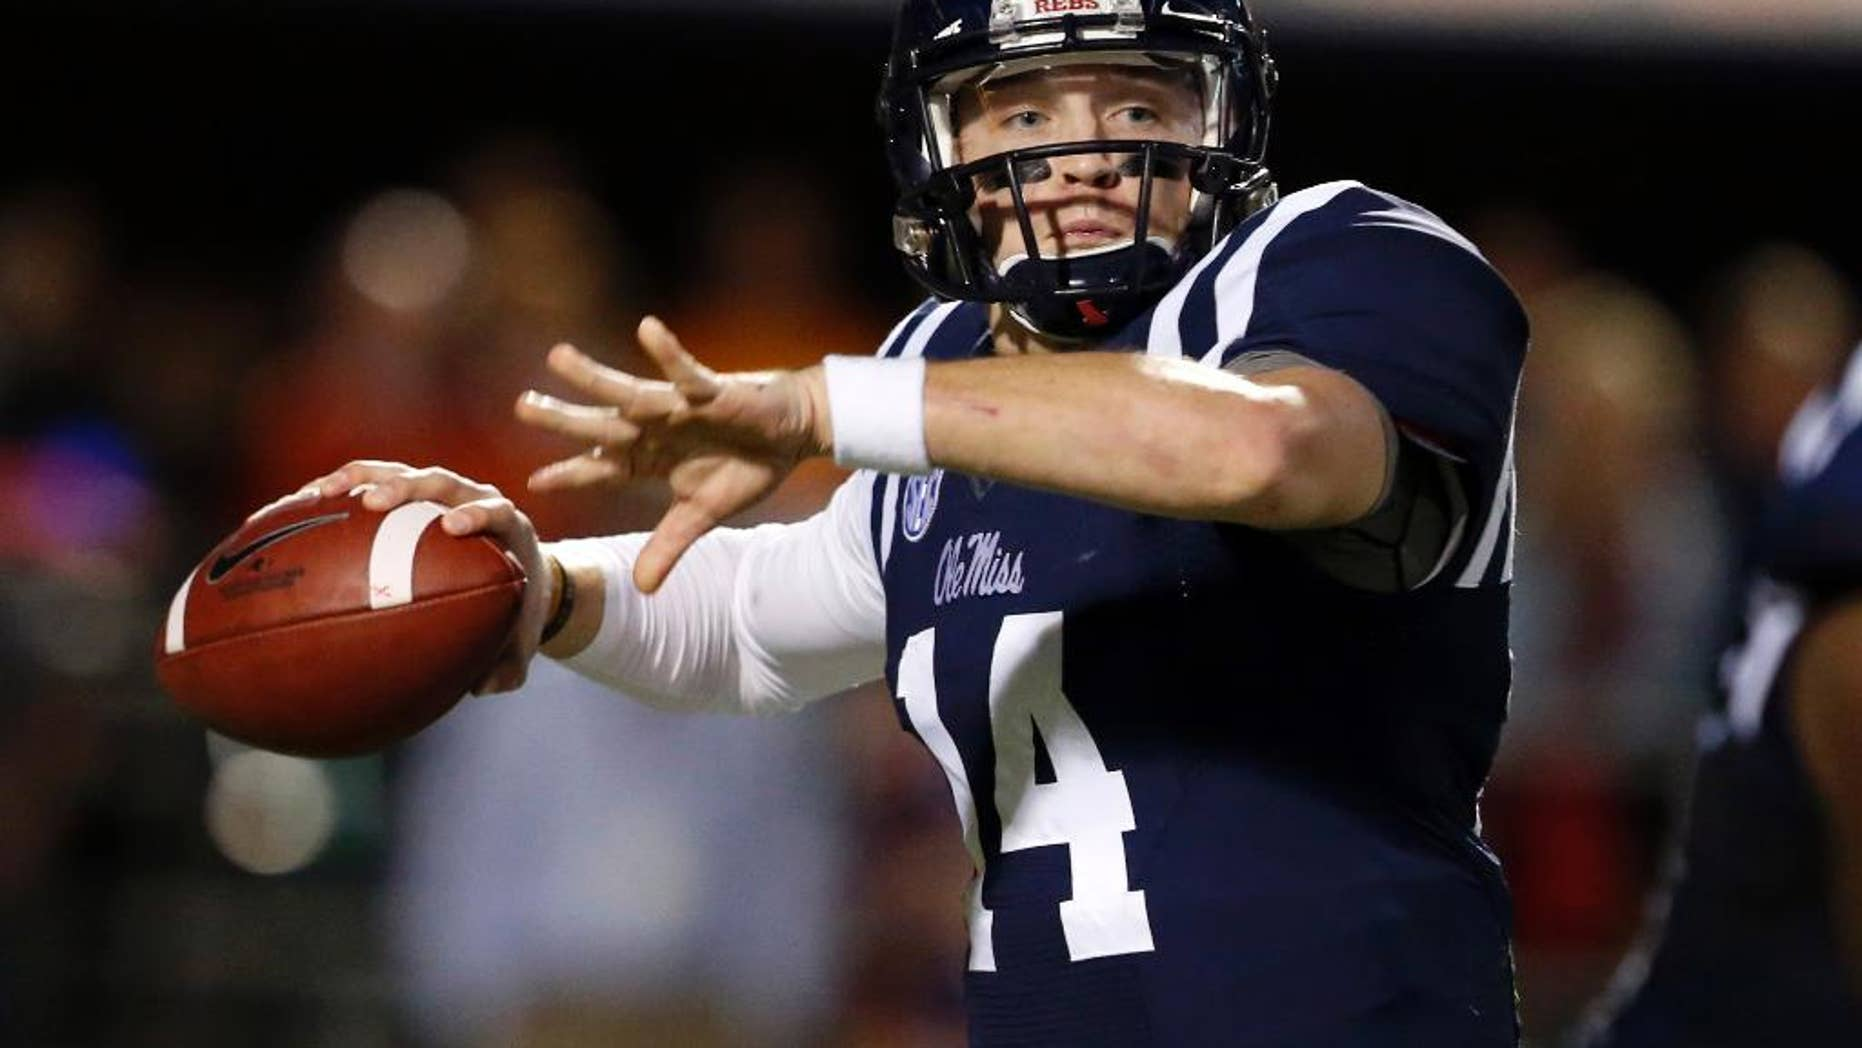 Mississippi quarterback Bo Wallace readies to pass against Tennessee in the second half of an NCAA college football game in Oxford, Miss., Saturday, Oct. 18, 2014. No. 3 Mississippi won 34-3. (AP Photo/Rogelio V. Solis)